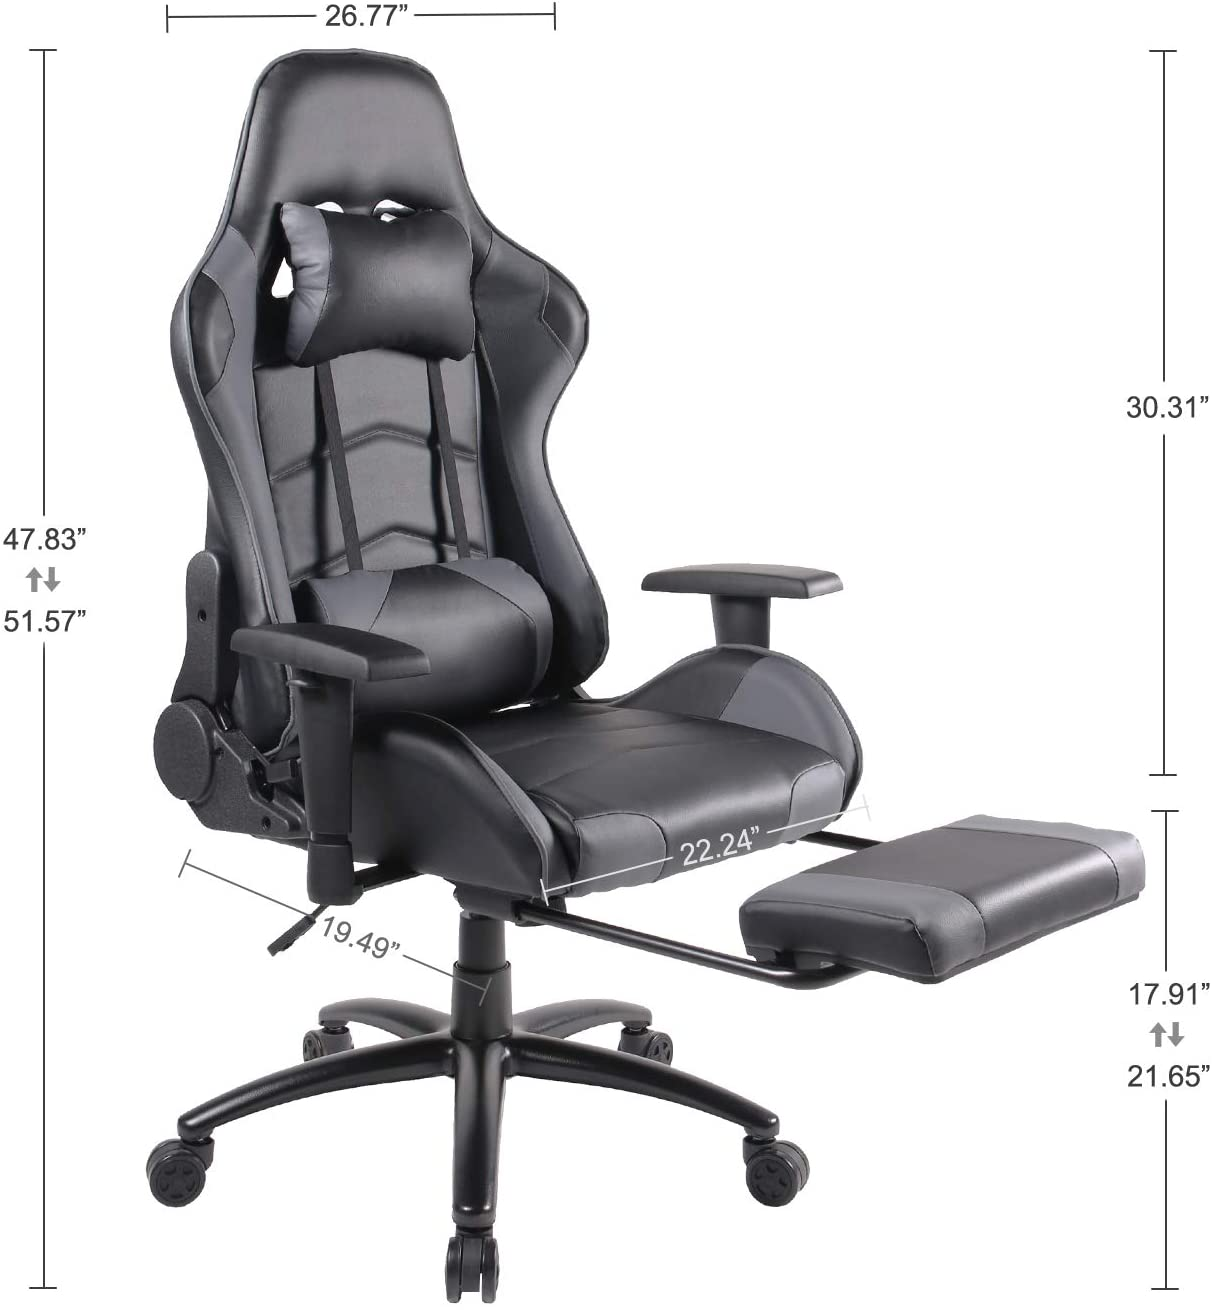 Smugdesk Gaming Racing Office High Back PU Leather Computer Desk Executive and Ergonomic Swivel Chair with Headrest